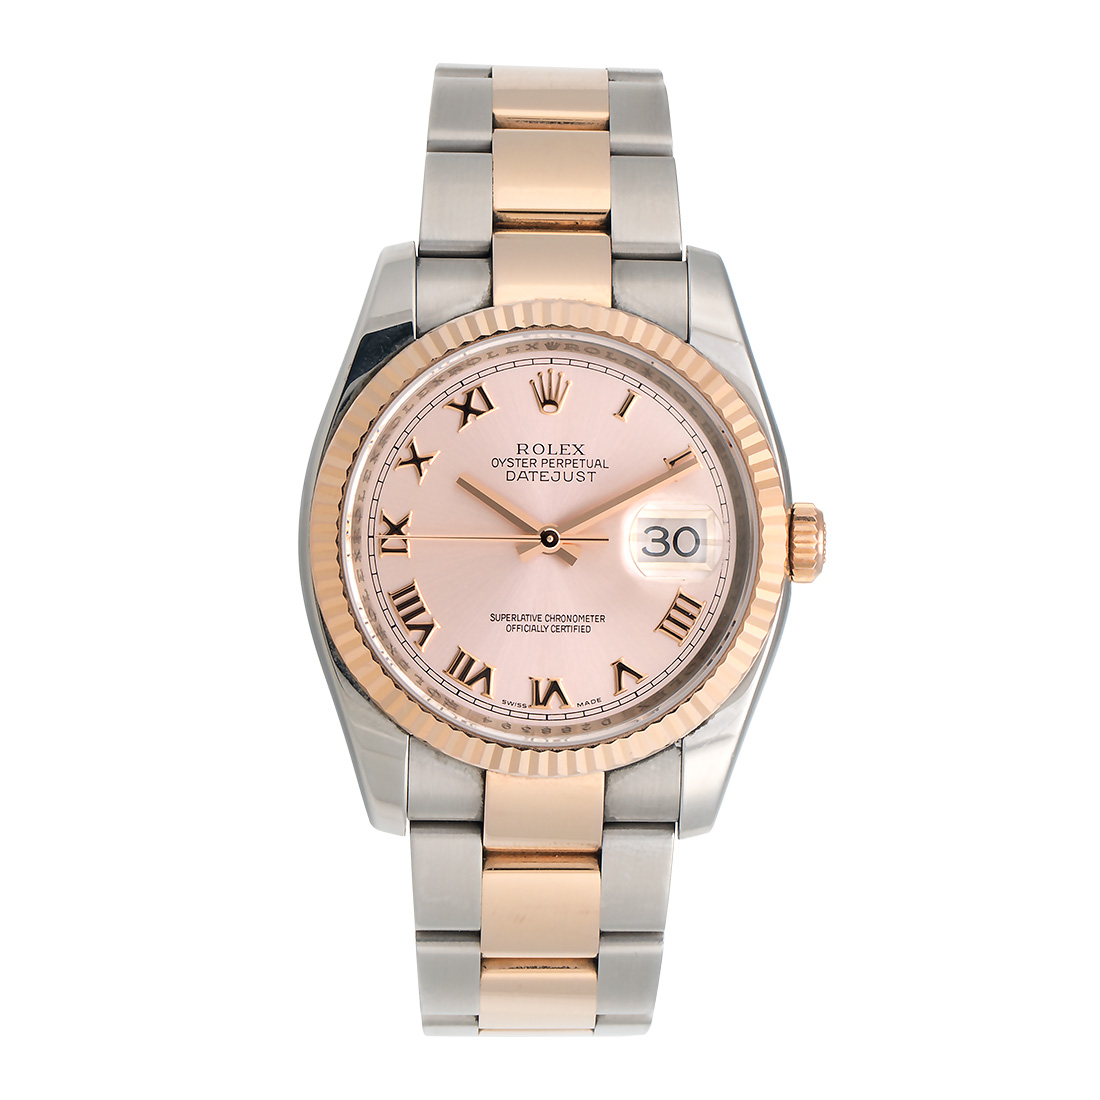 48b041e2dbb Rolex Oyster Perpetual Datejust 116231 PRO Pink Dial Stainless Steel and  18K Everose Gold Bracelet Automatic 36mm Mens Watch   Rolex   Buy at  TrueFacet